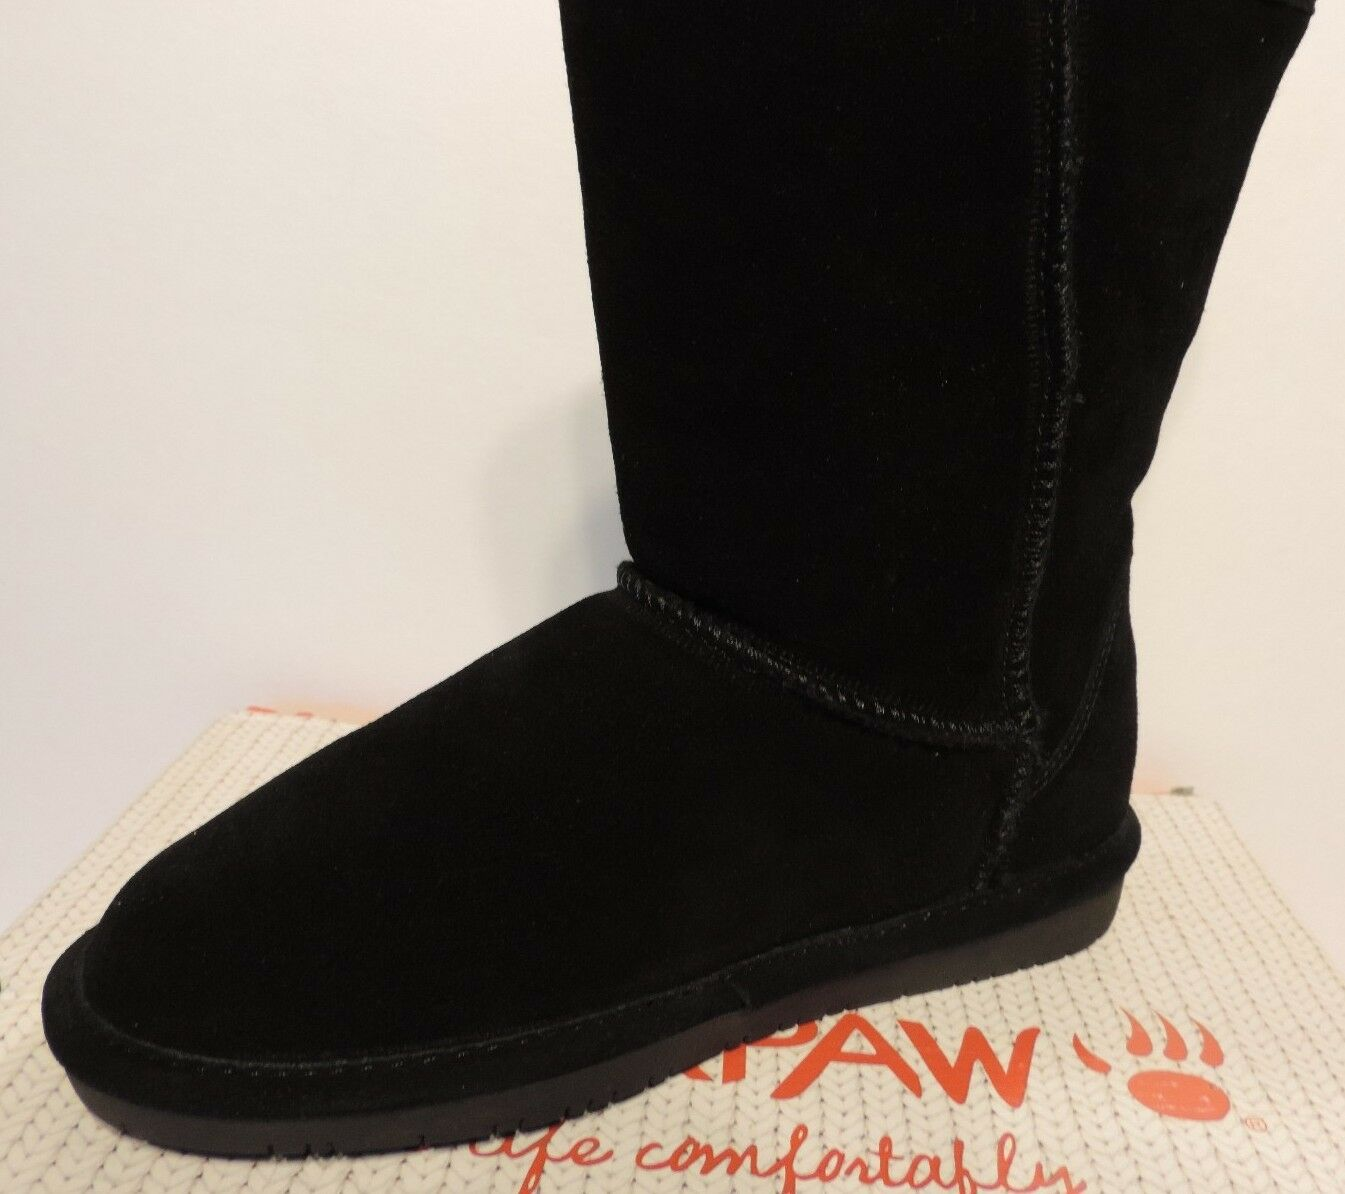 New Bearpaw Emma Short 8 608W black Cow Suede Upper Sheepskin wool blend